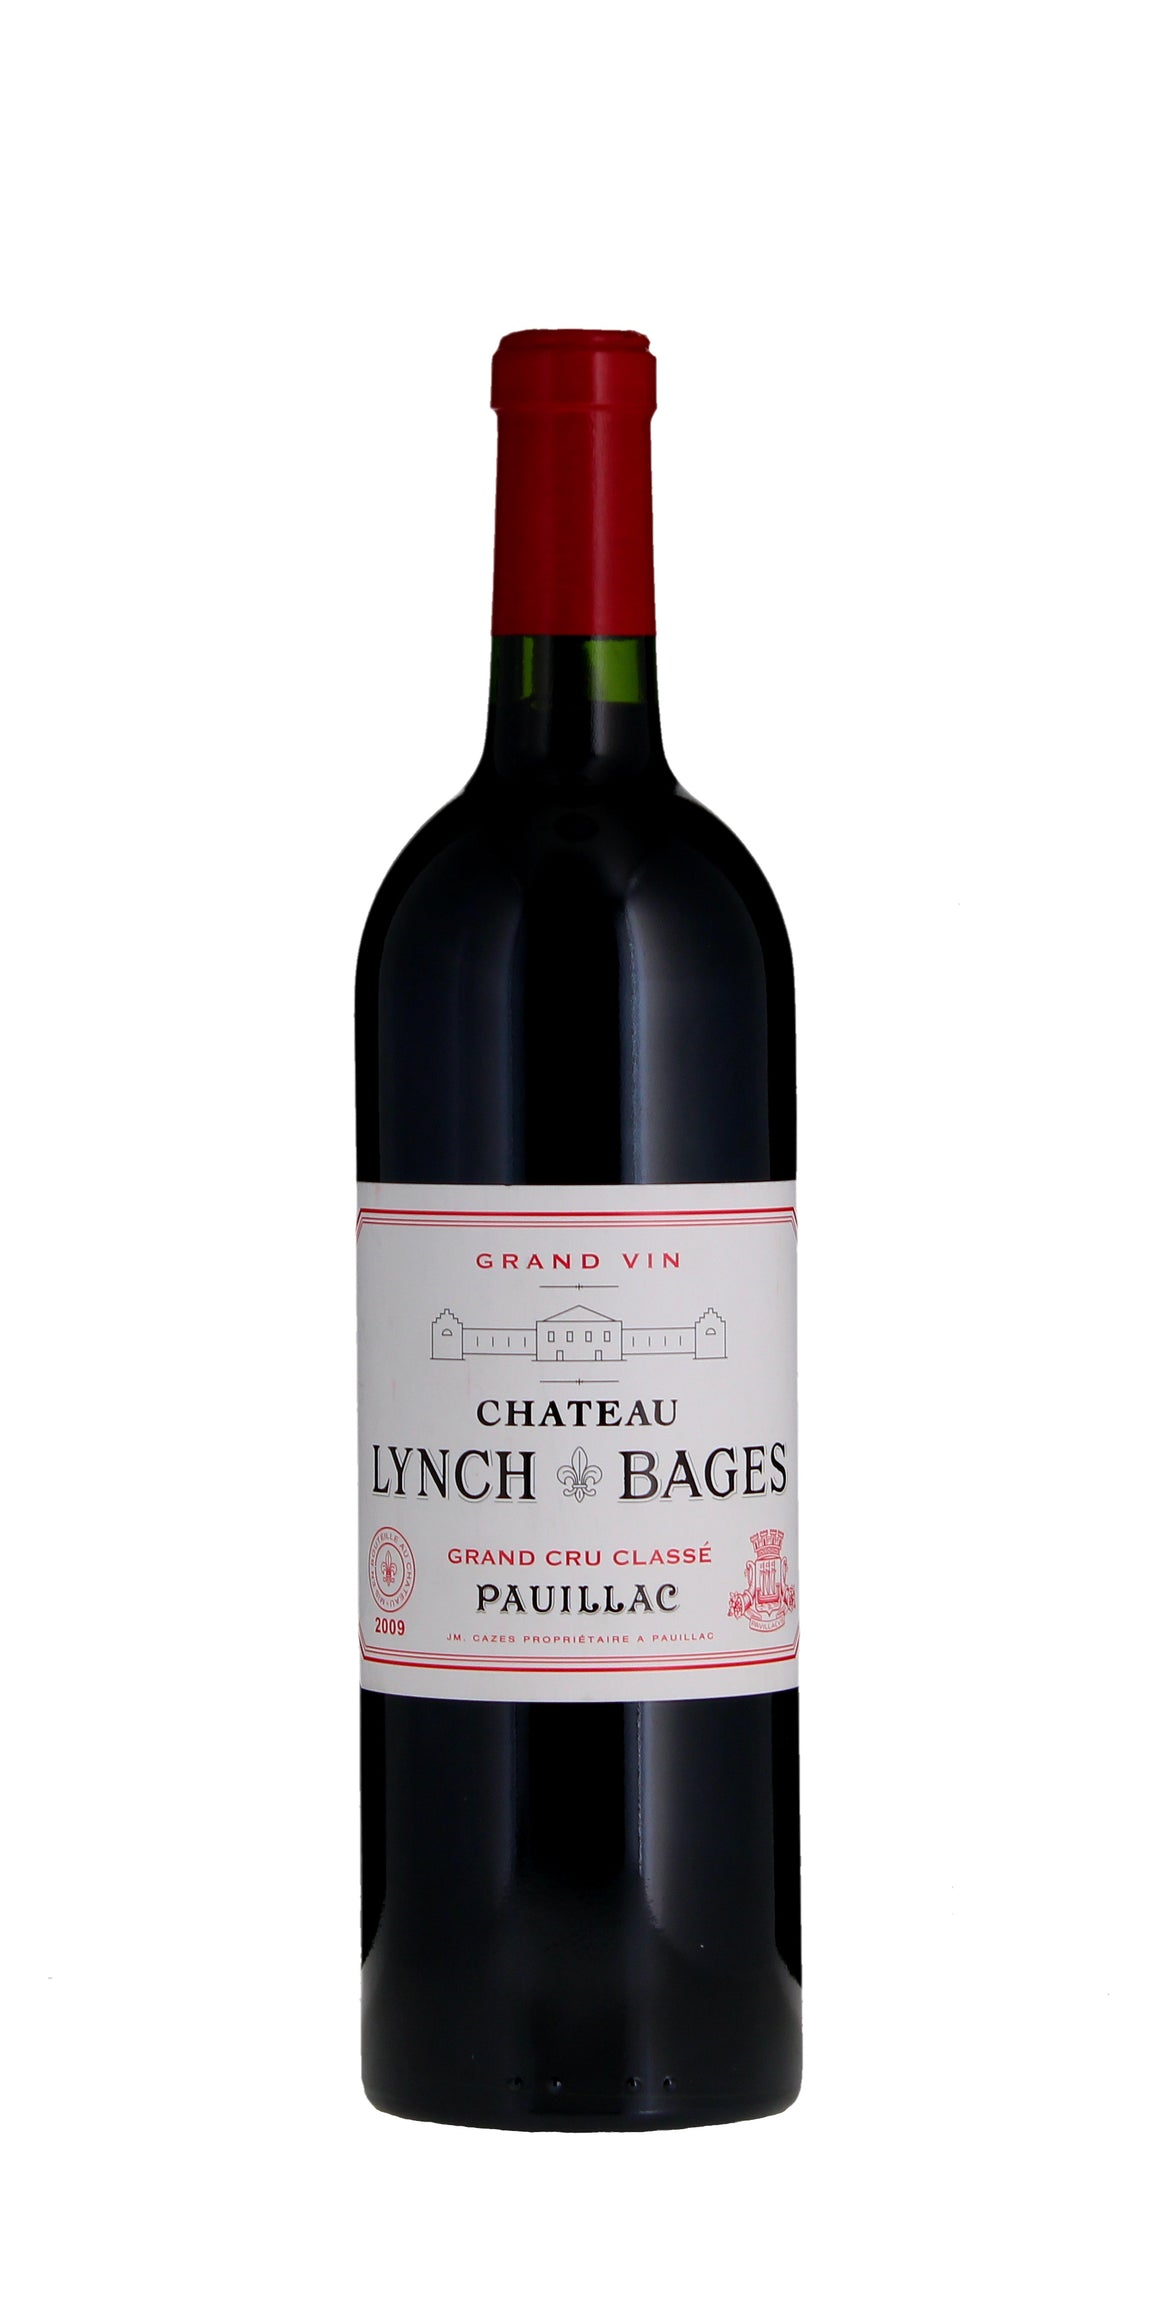 Chateau Lynch-Bages, Pauillac 2009